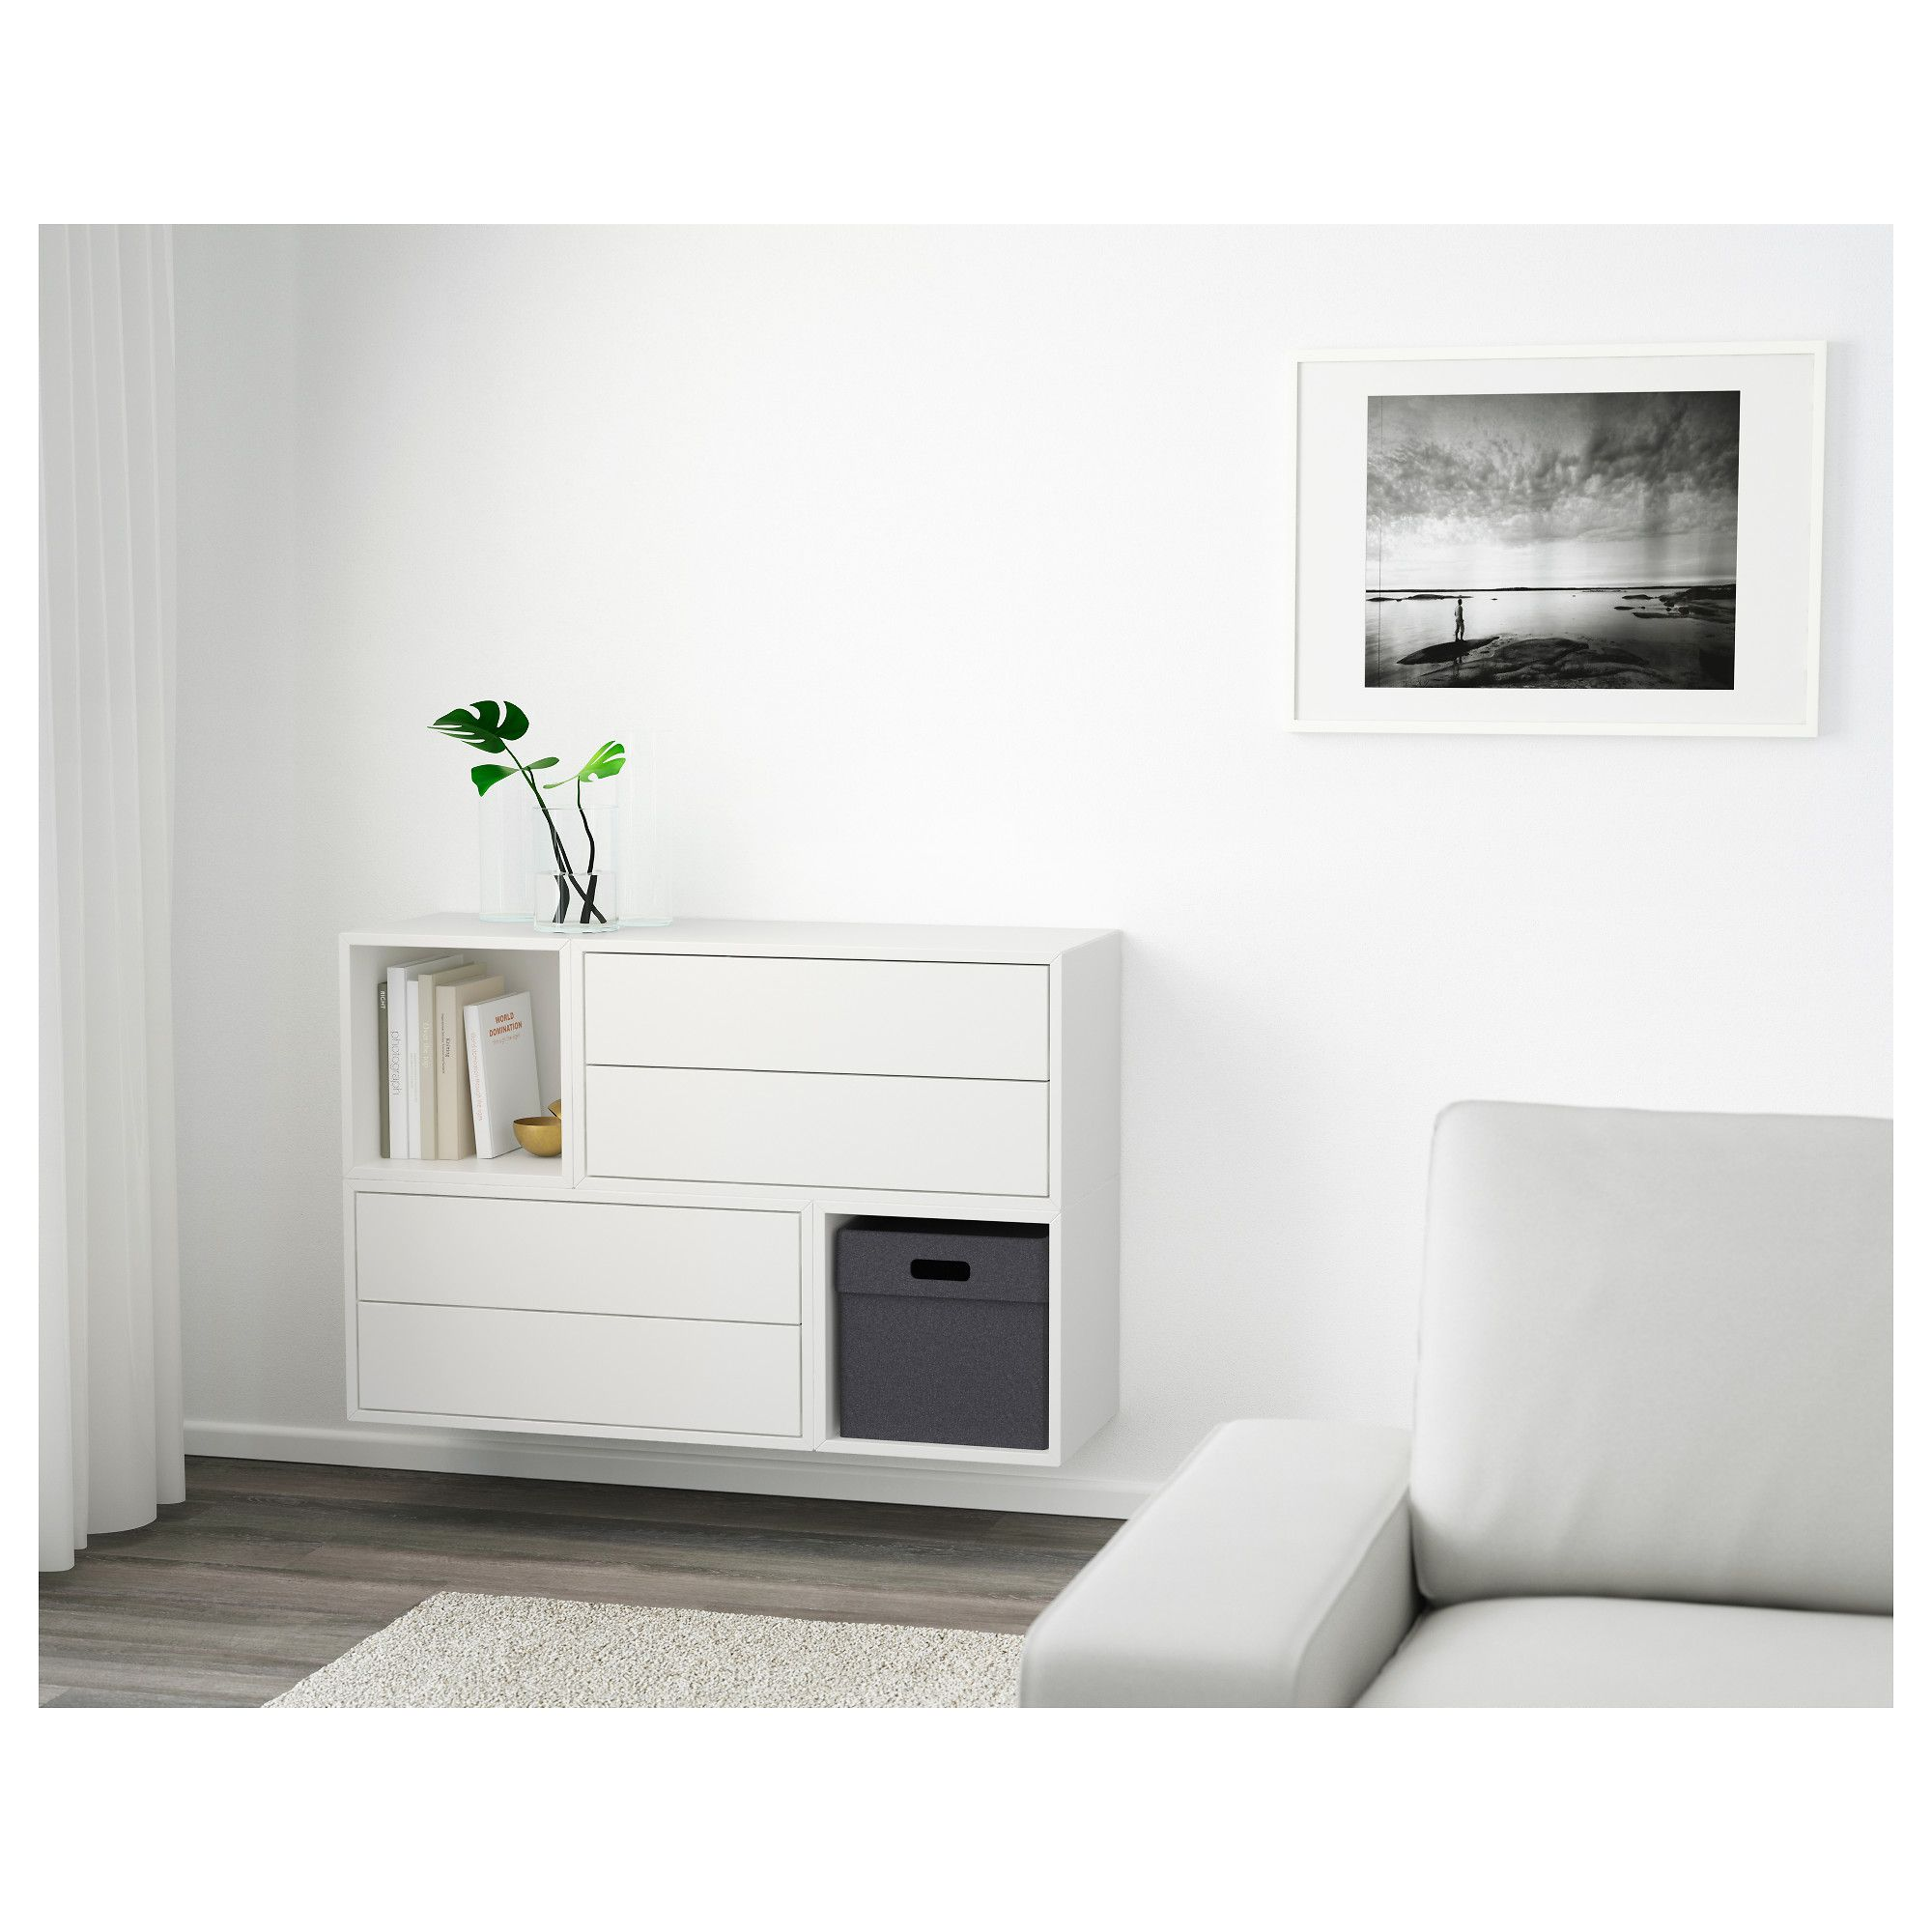 Muebles Recibidores Ikea Eket Wall Mounted Cabinet Combination White 105 X 35 X 70